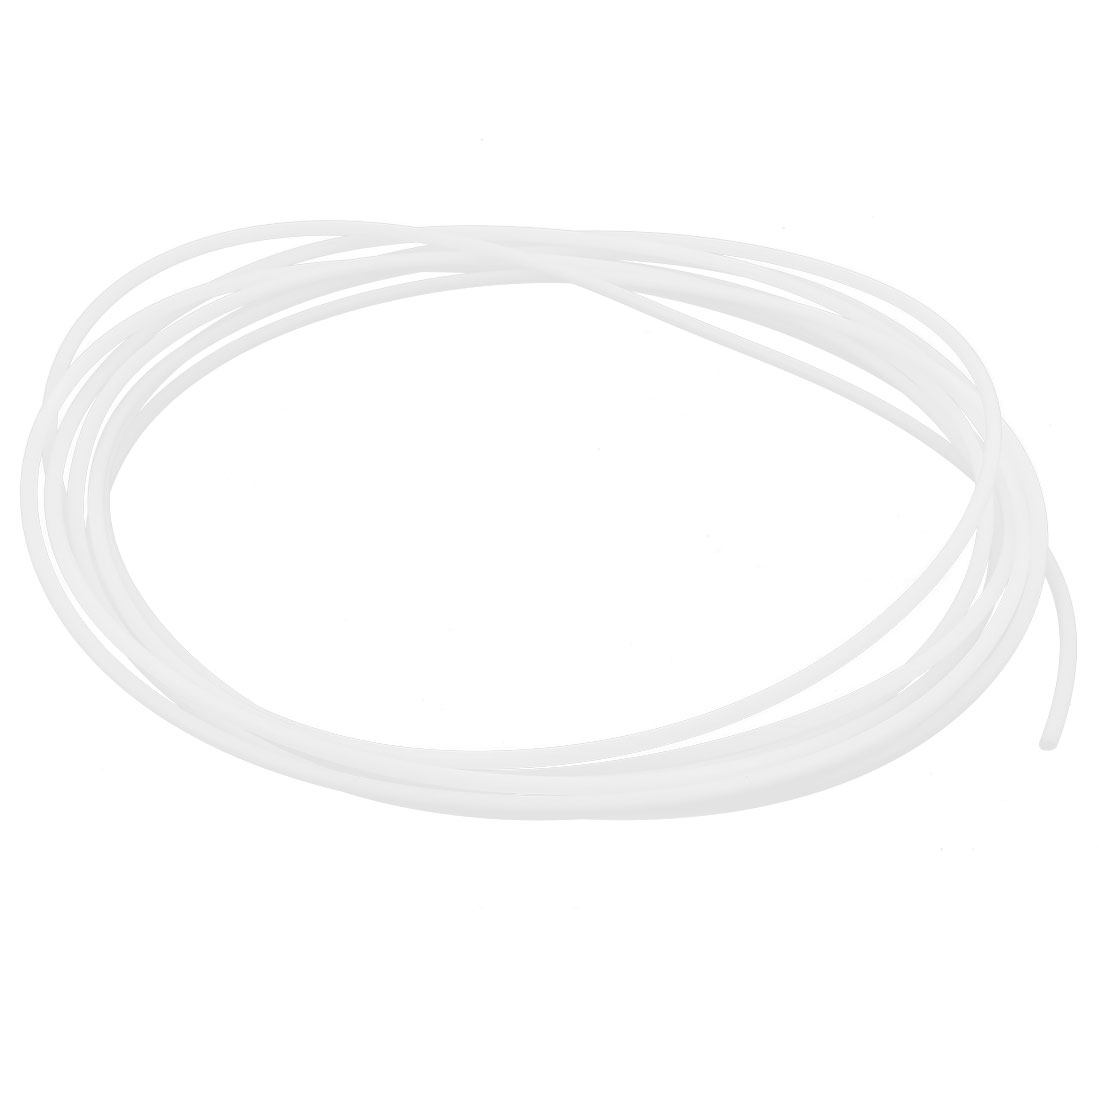 5M Length 2mm ID 4mm OD PTFE Tubing Tube Pipe for 3D Printer RepRap